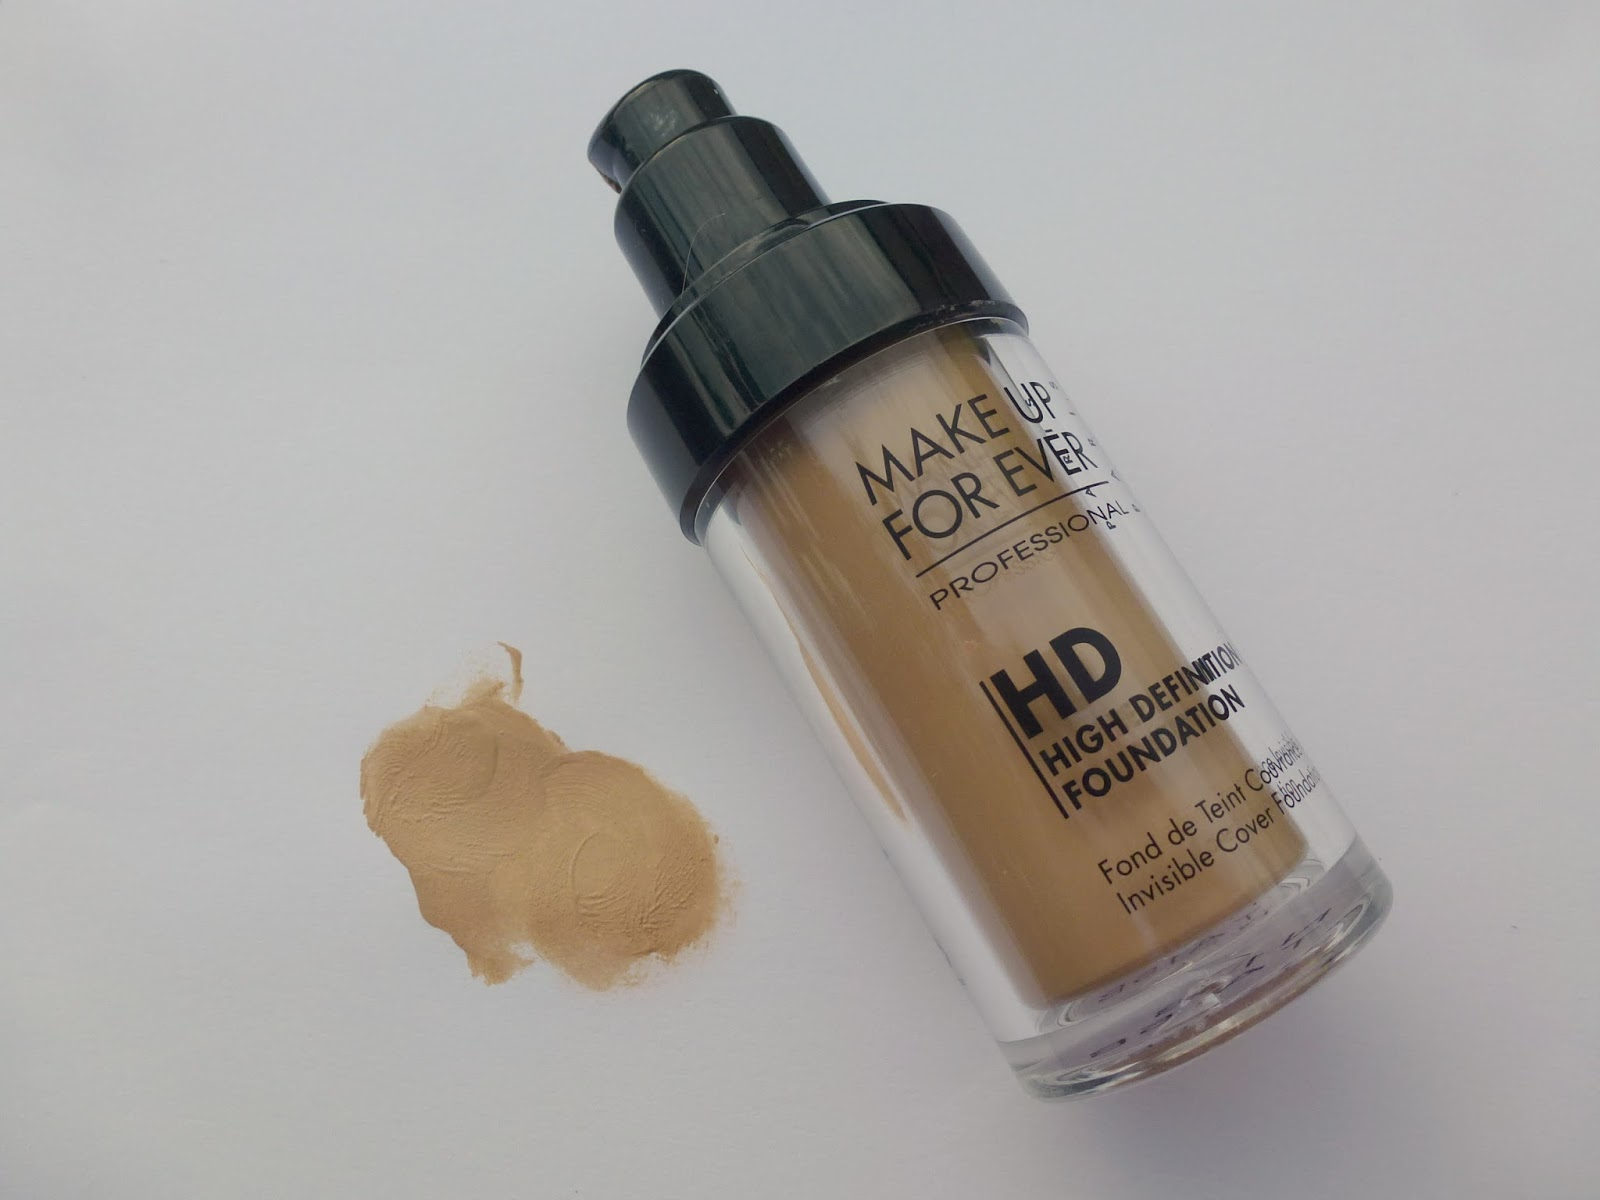 make-up-forever-hd-foundation-review